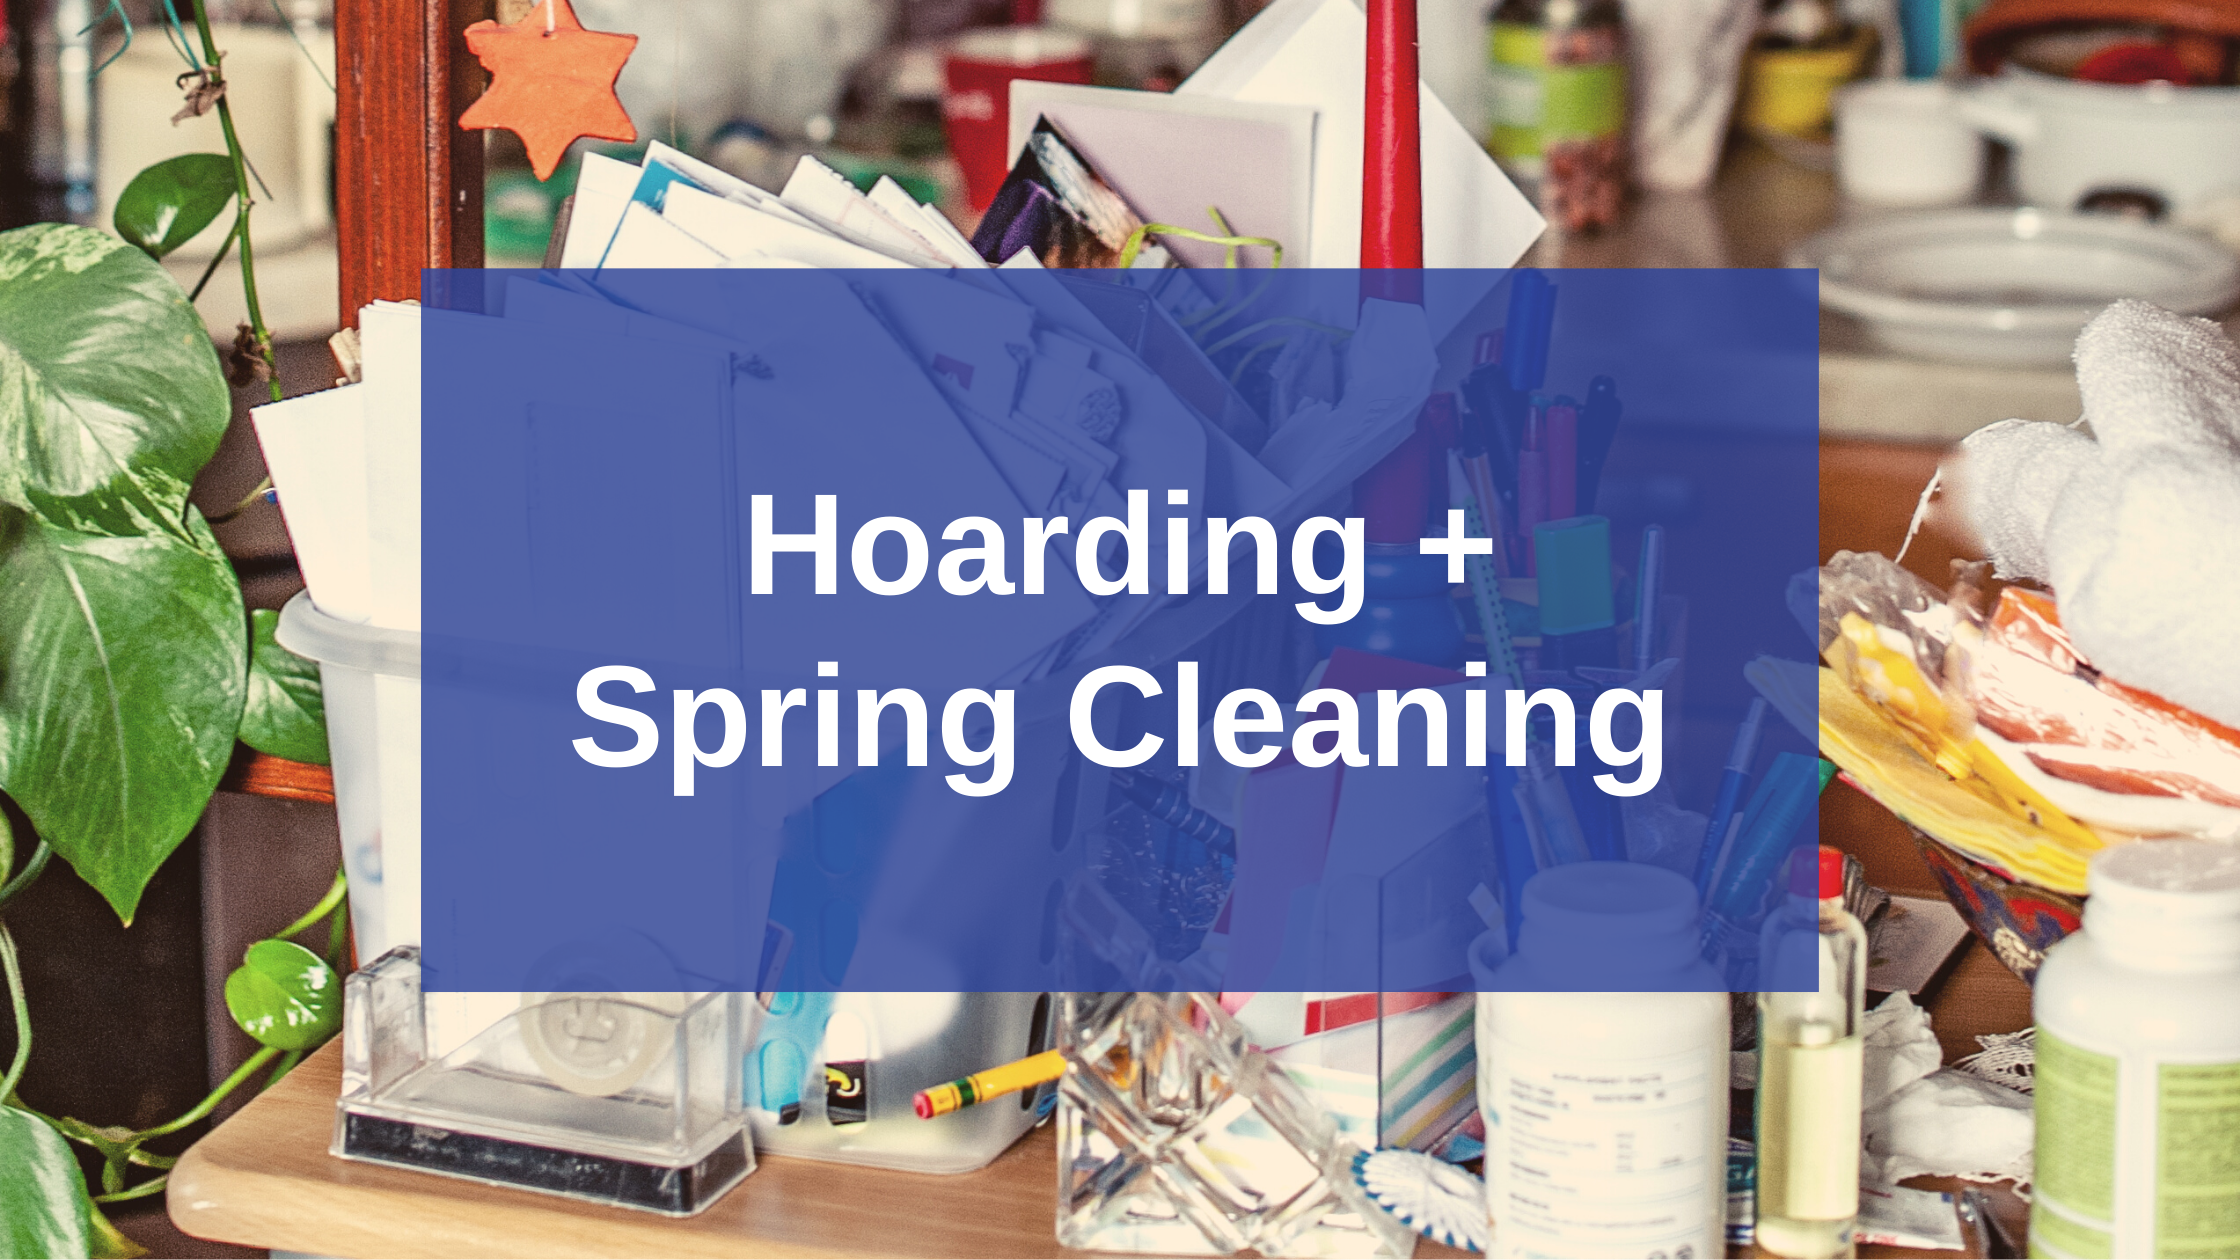 Hoarding + Spring Cleaning = New Beginning